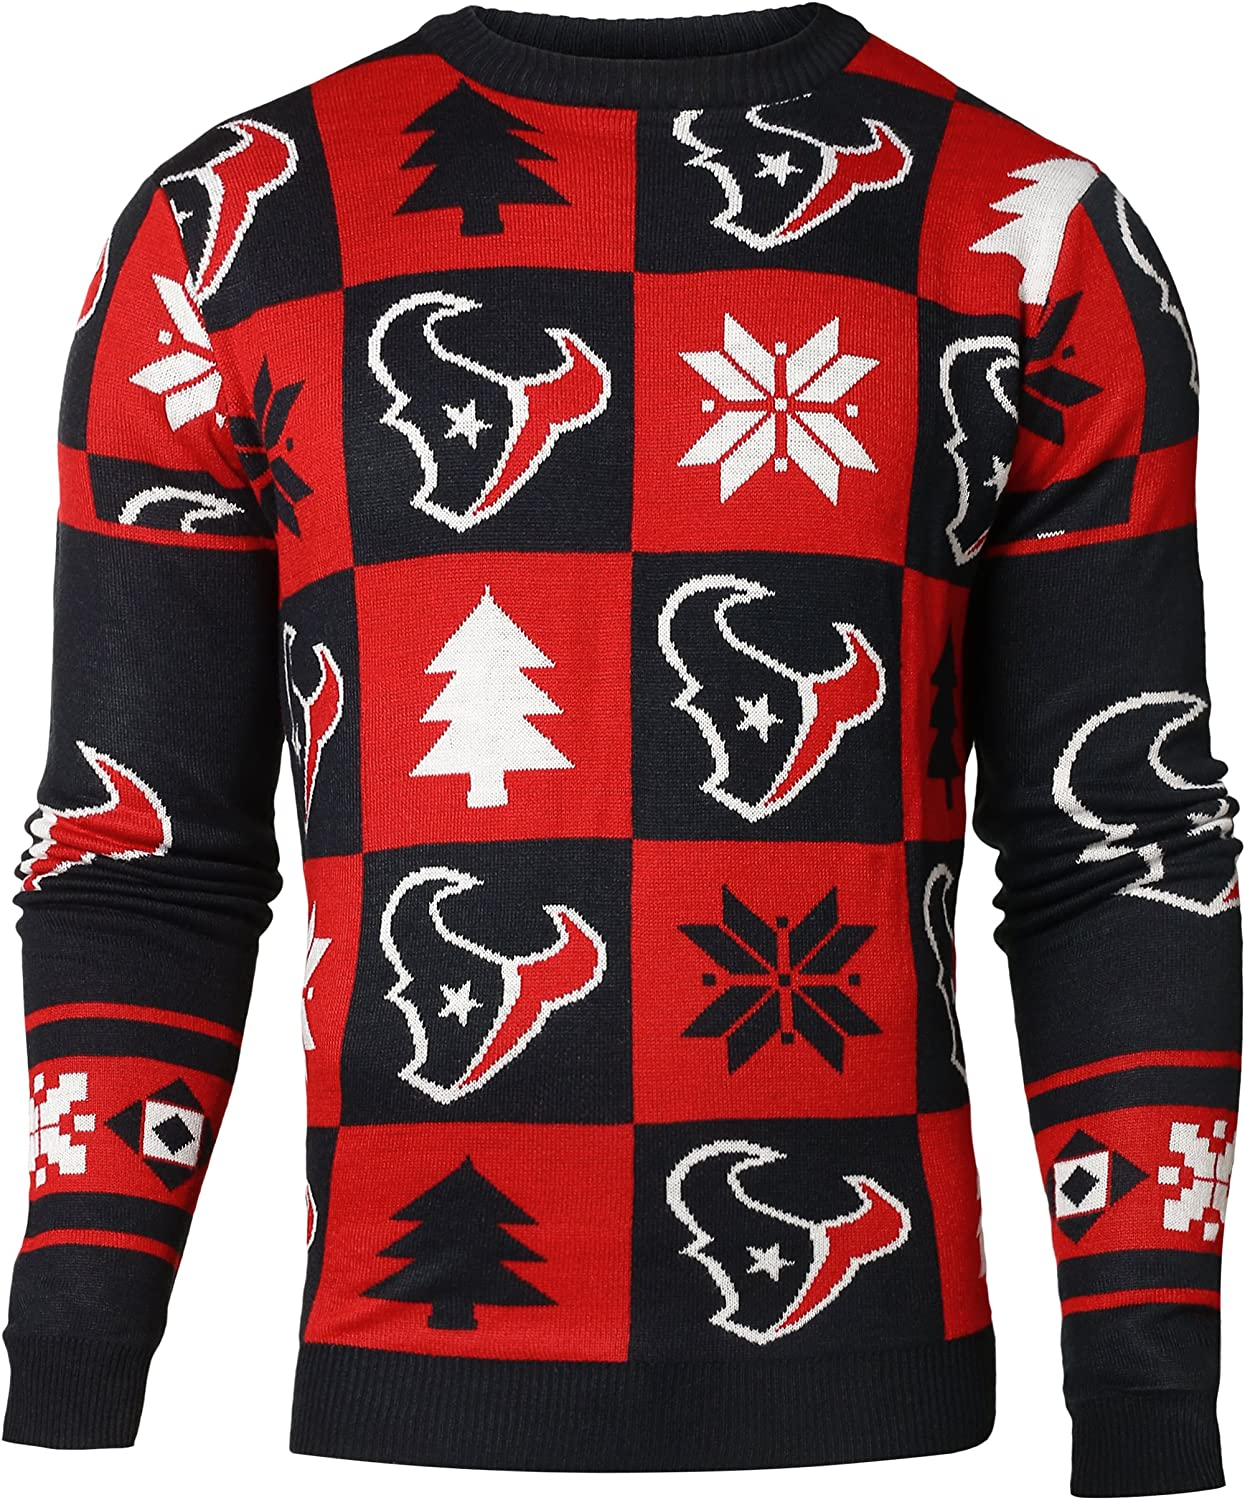 new styles bebc6 c33cb Houston Texans NFL Forever Collectibles Red & Navy Knit ...